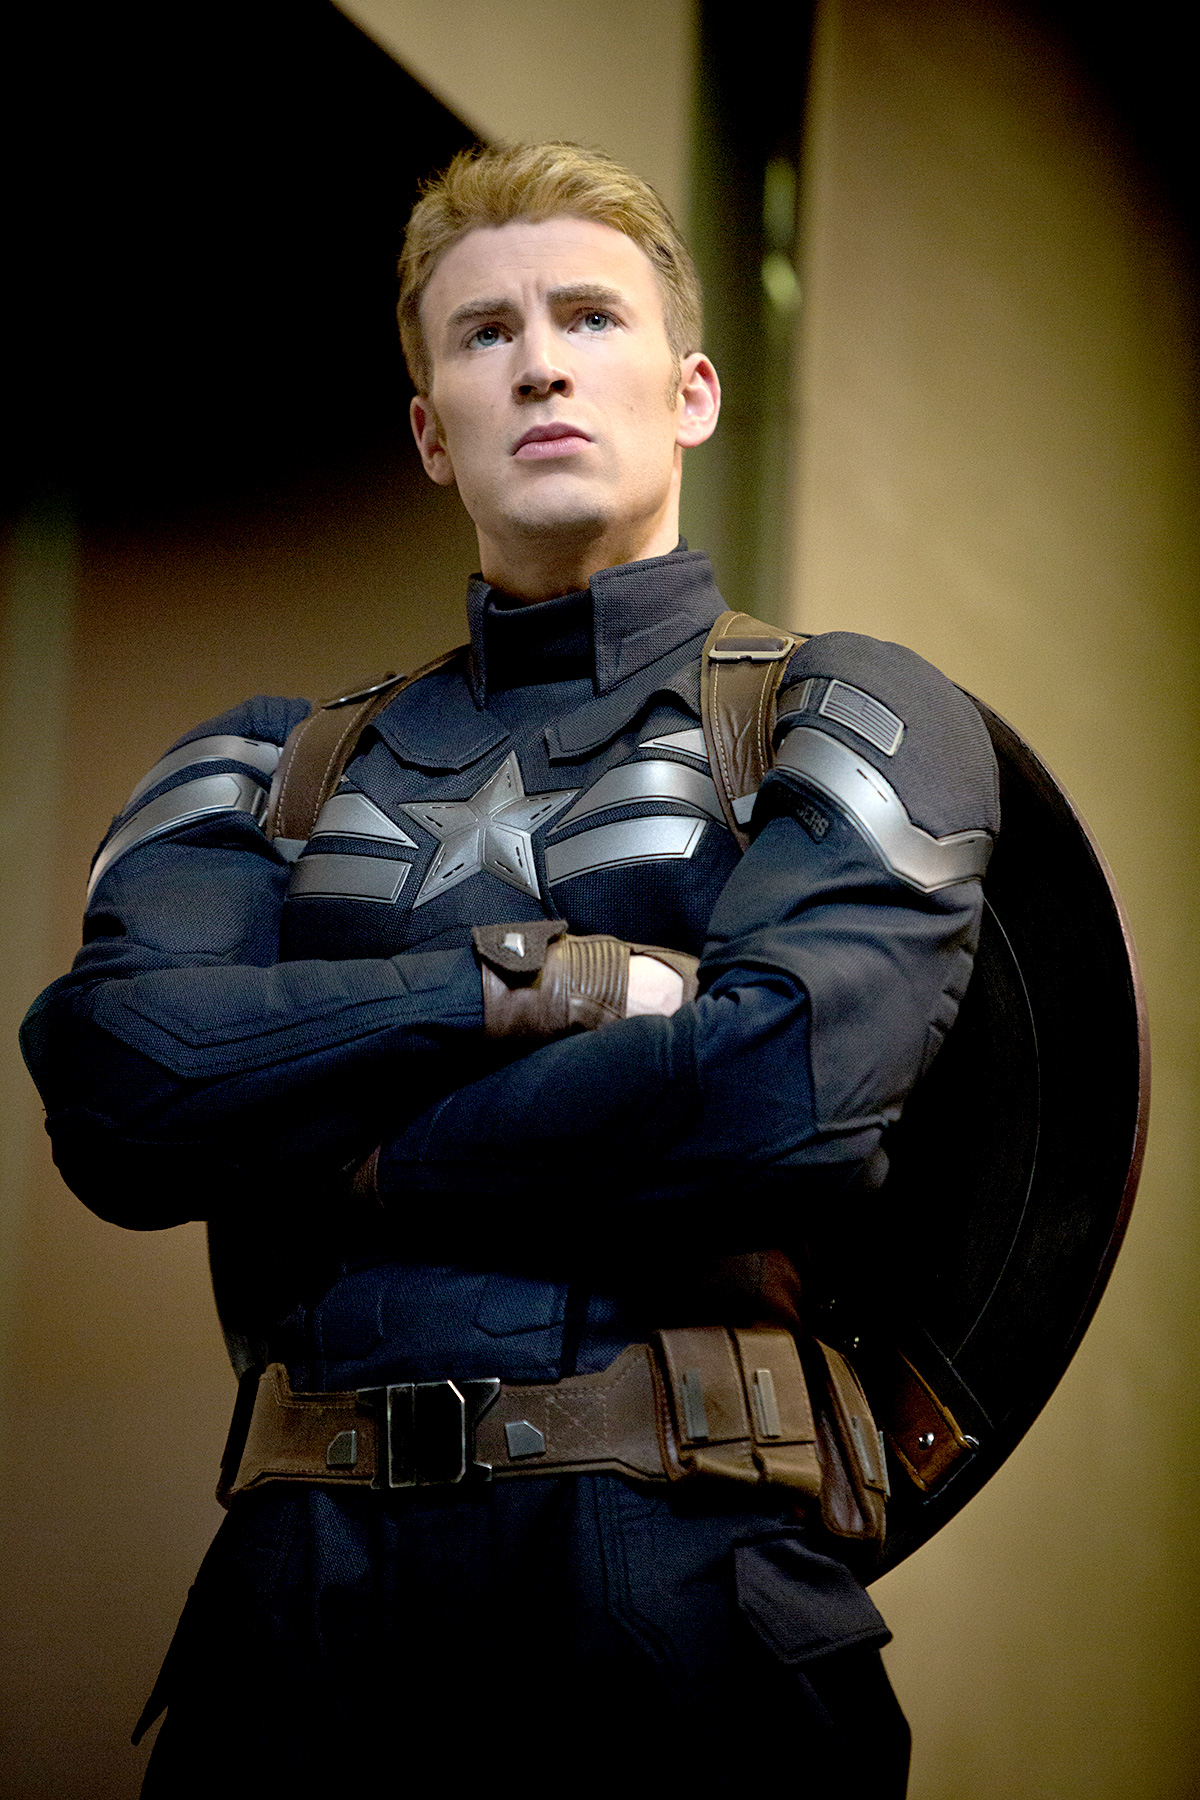 Chris Evans broke out the stars and stripes as Steve Rogers/Captain America in 2011's Captain America: The First Avenger , 2012's The Avengers , 2013's Thor: The Dark World , and 2014's Captain America: The Winter Soldier.